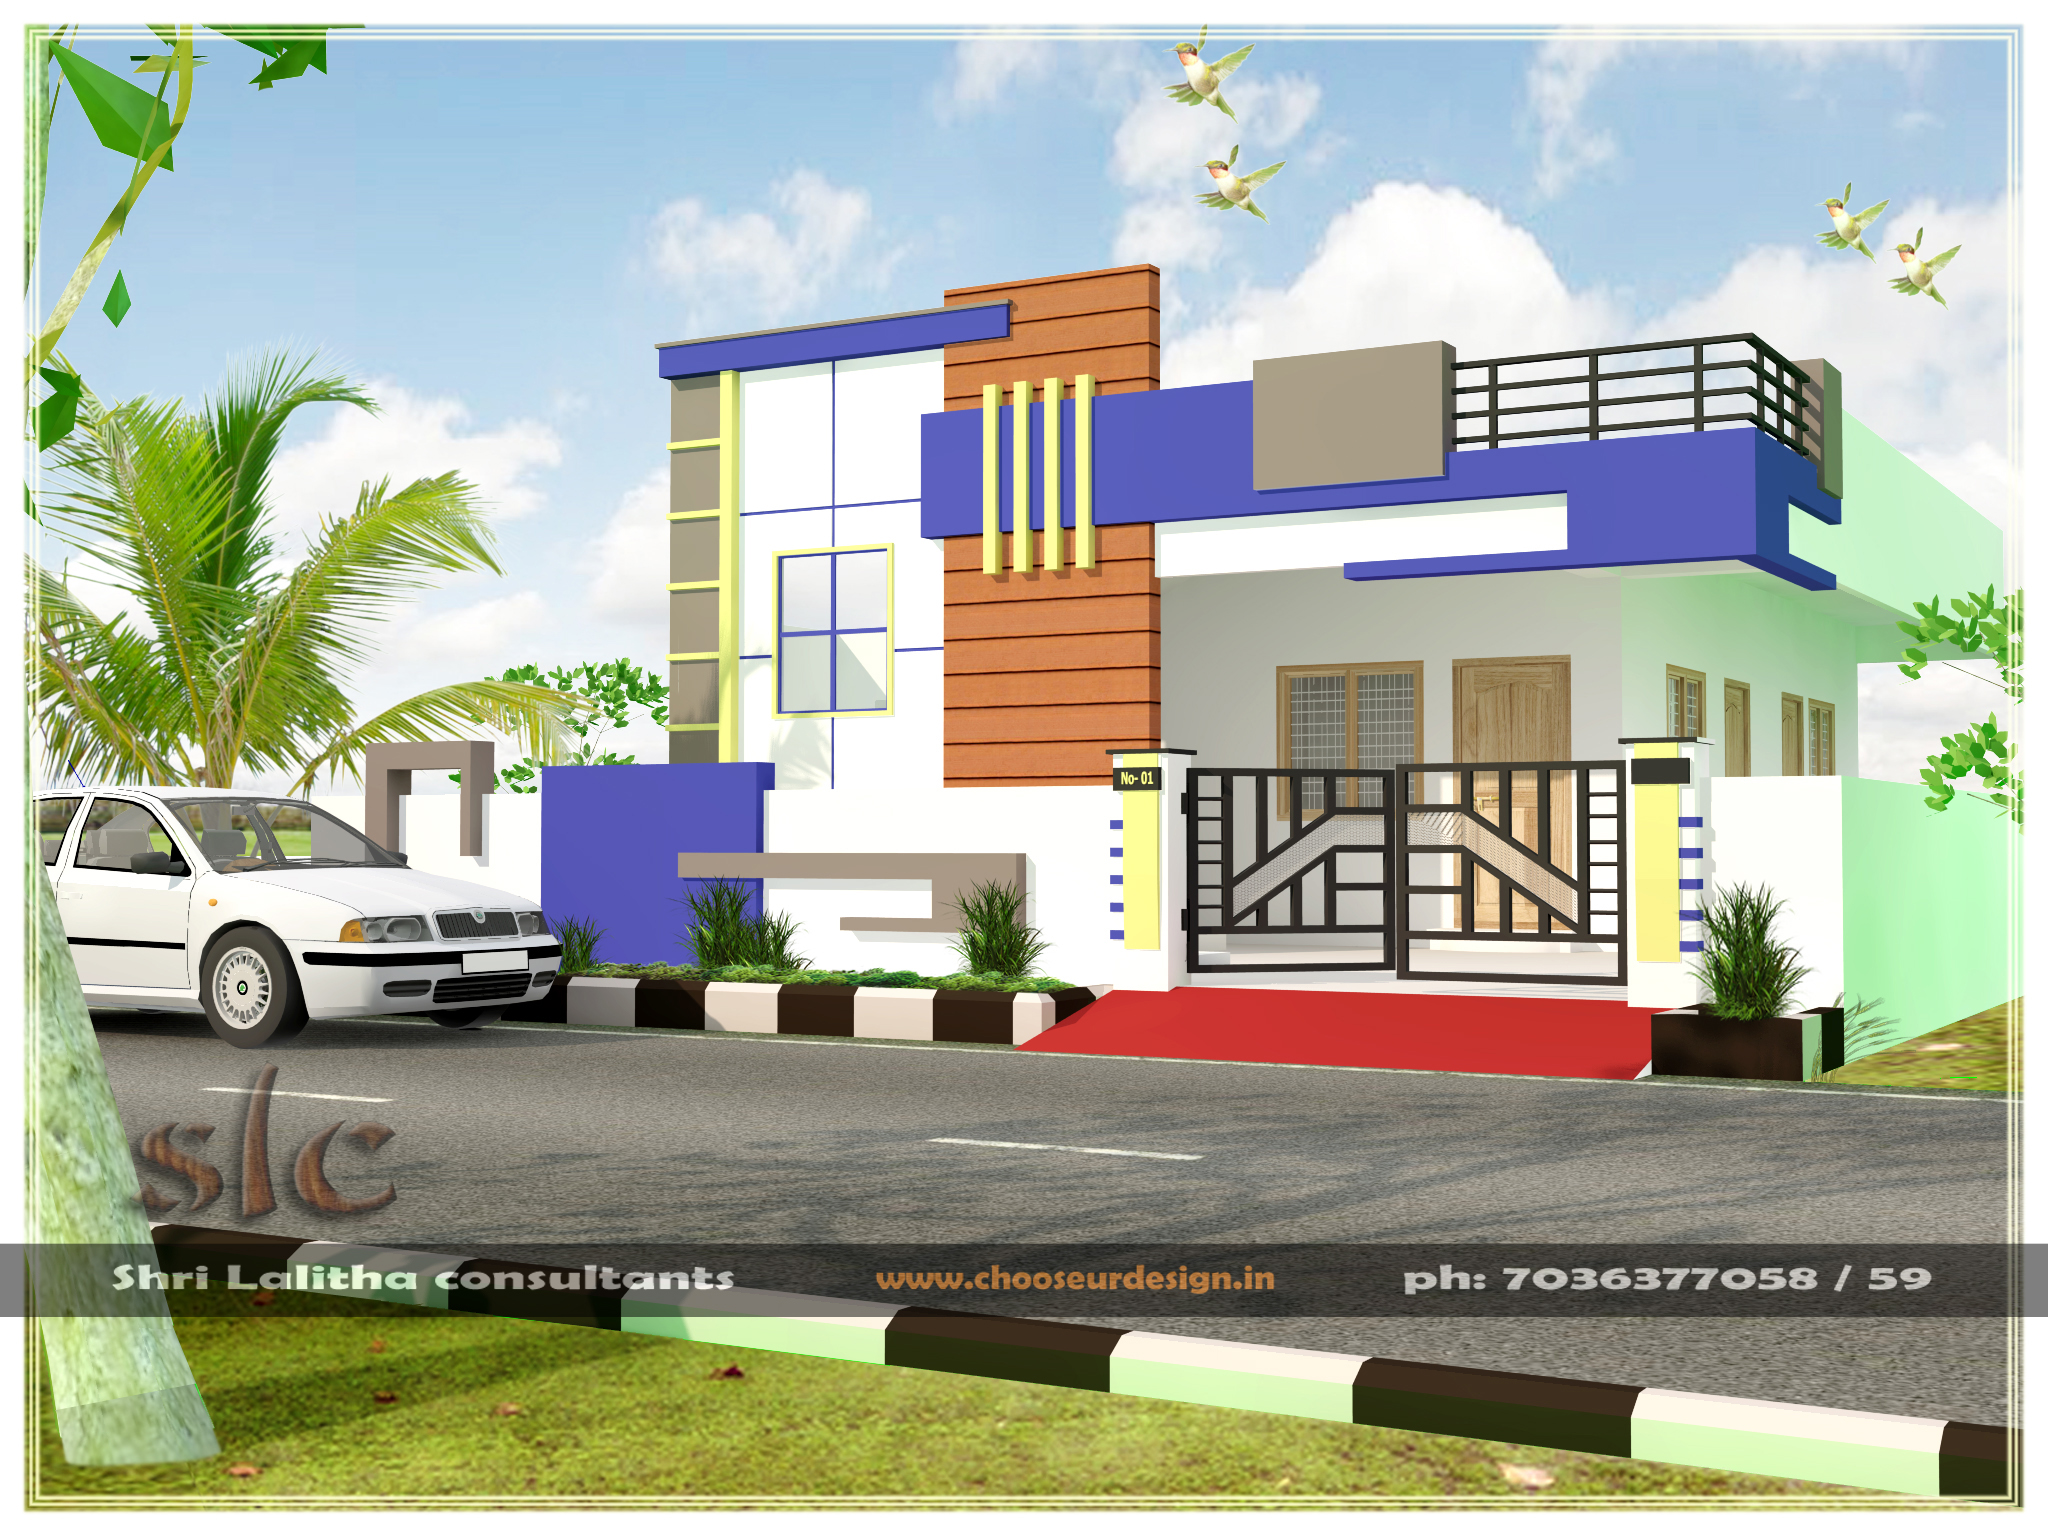 South indian house elevation india house design anandus for Single house front design